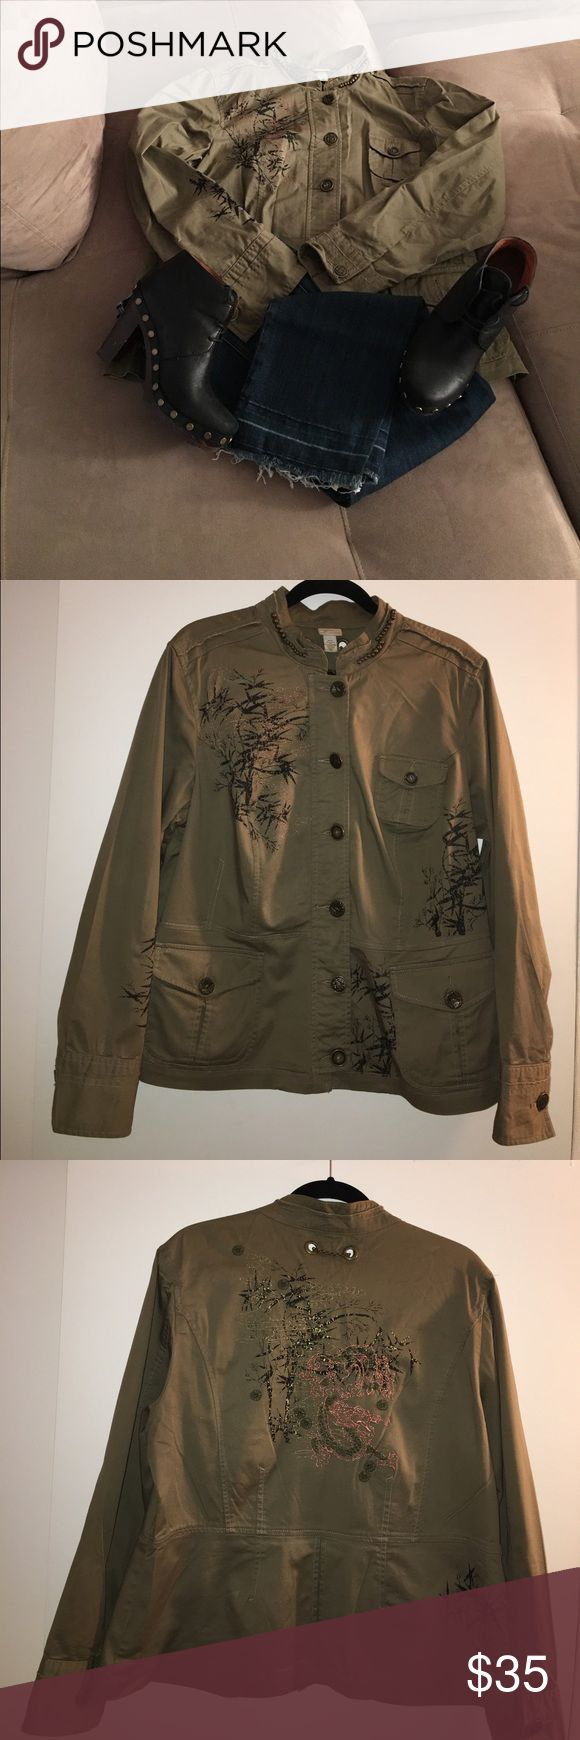 Venezia Olive Green Jacket Gently Worn - Venezia by Lane Bryant Olive Green with Embroidery Dragon Jacket (Details Shown In Photos)                Light Weight                                                                                    Jeans & Shoes Not Included Lane Bryant Jackets & Coats